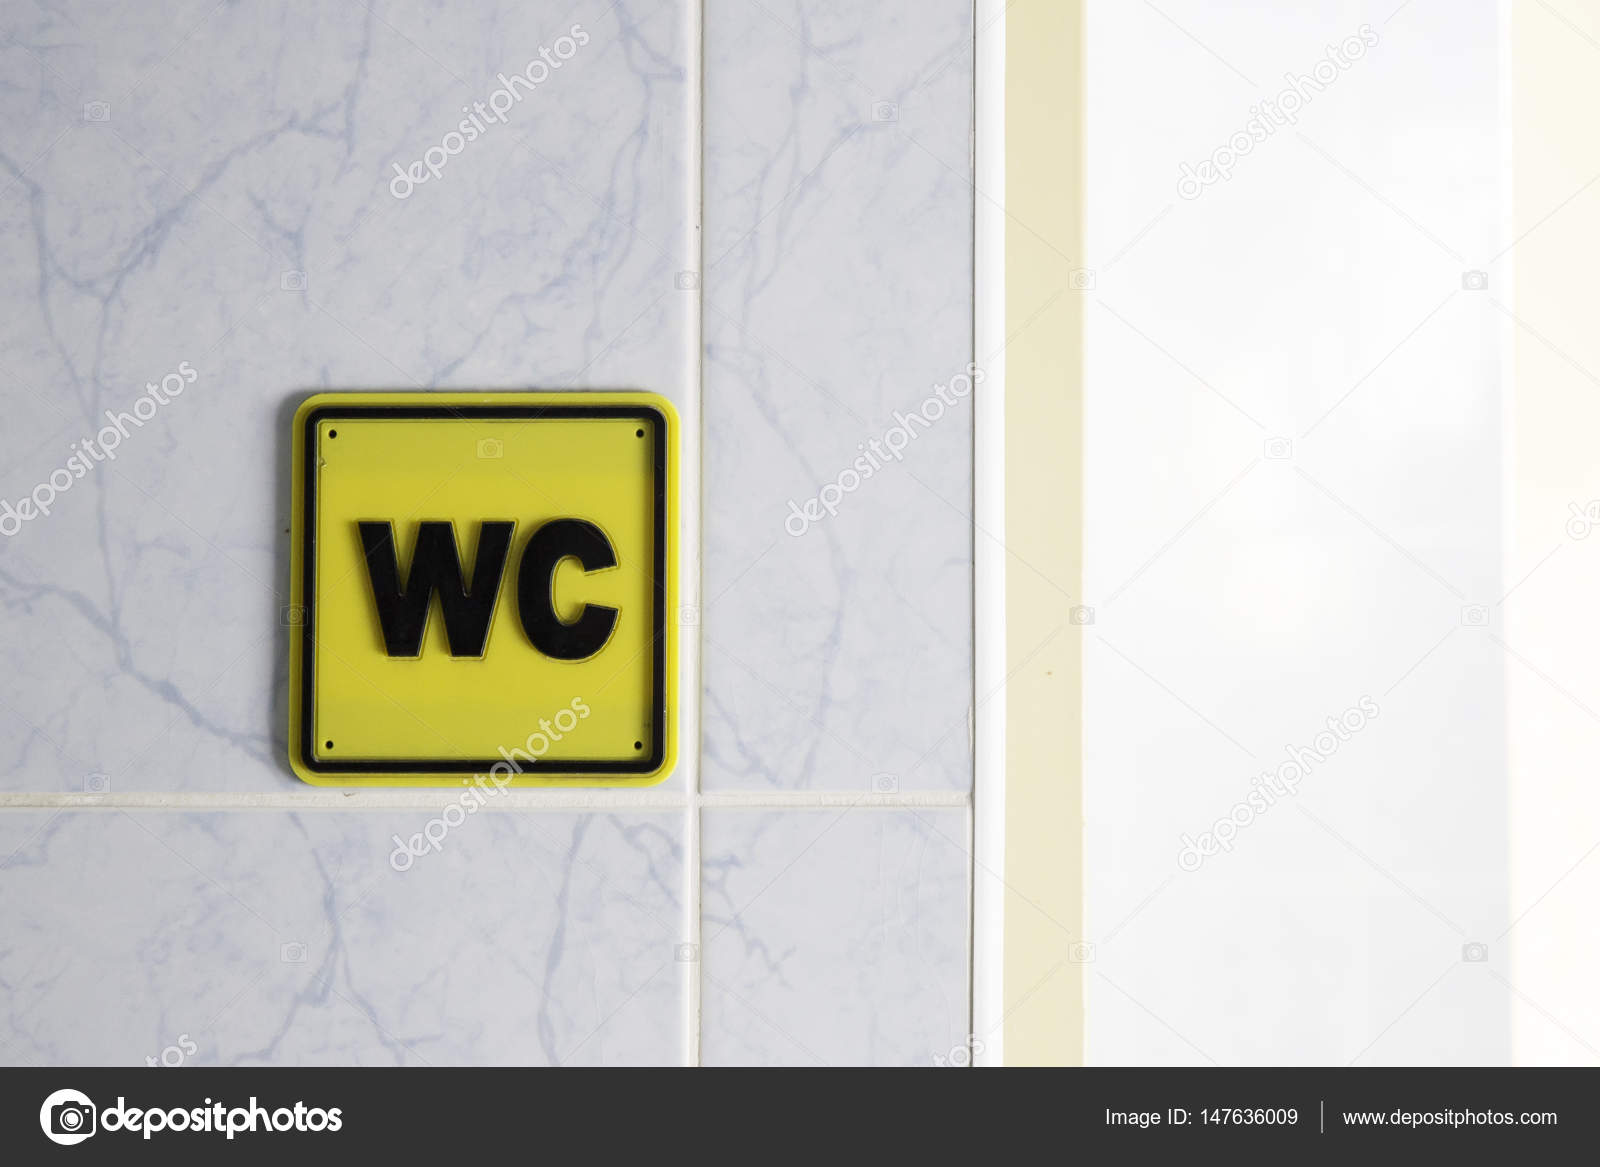 WC Water Closet Toilet Sign On Wall U2014 Stock Photo #147636009